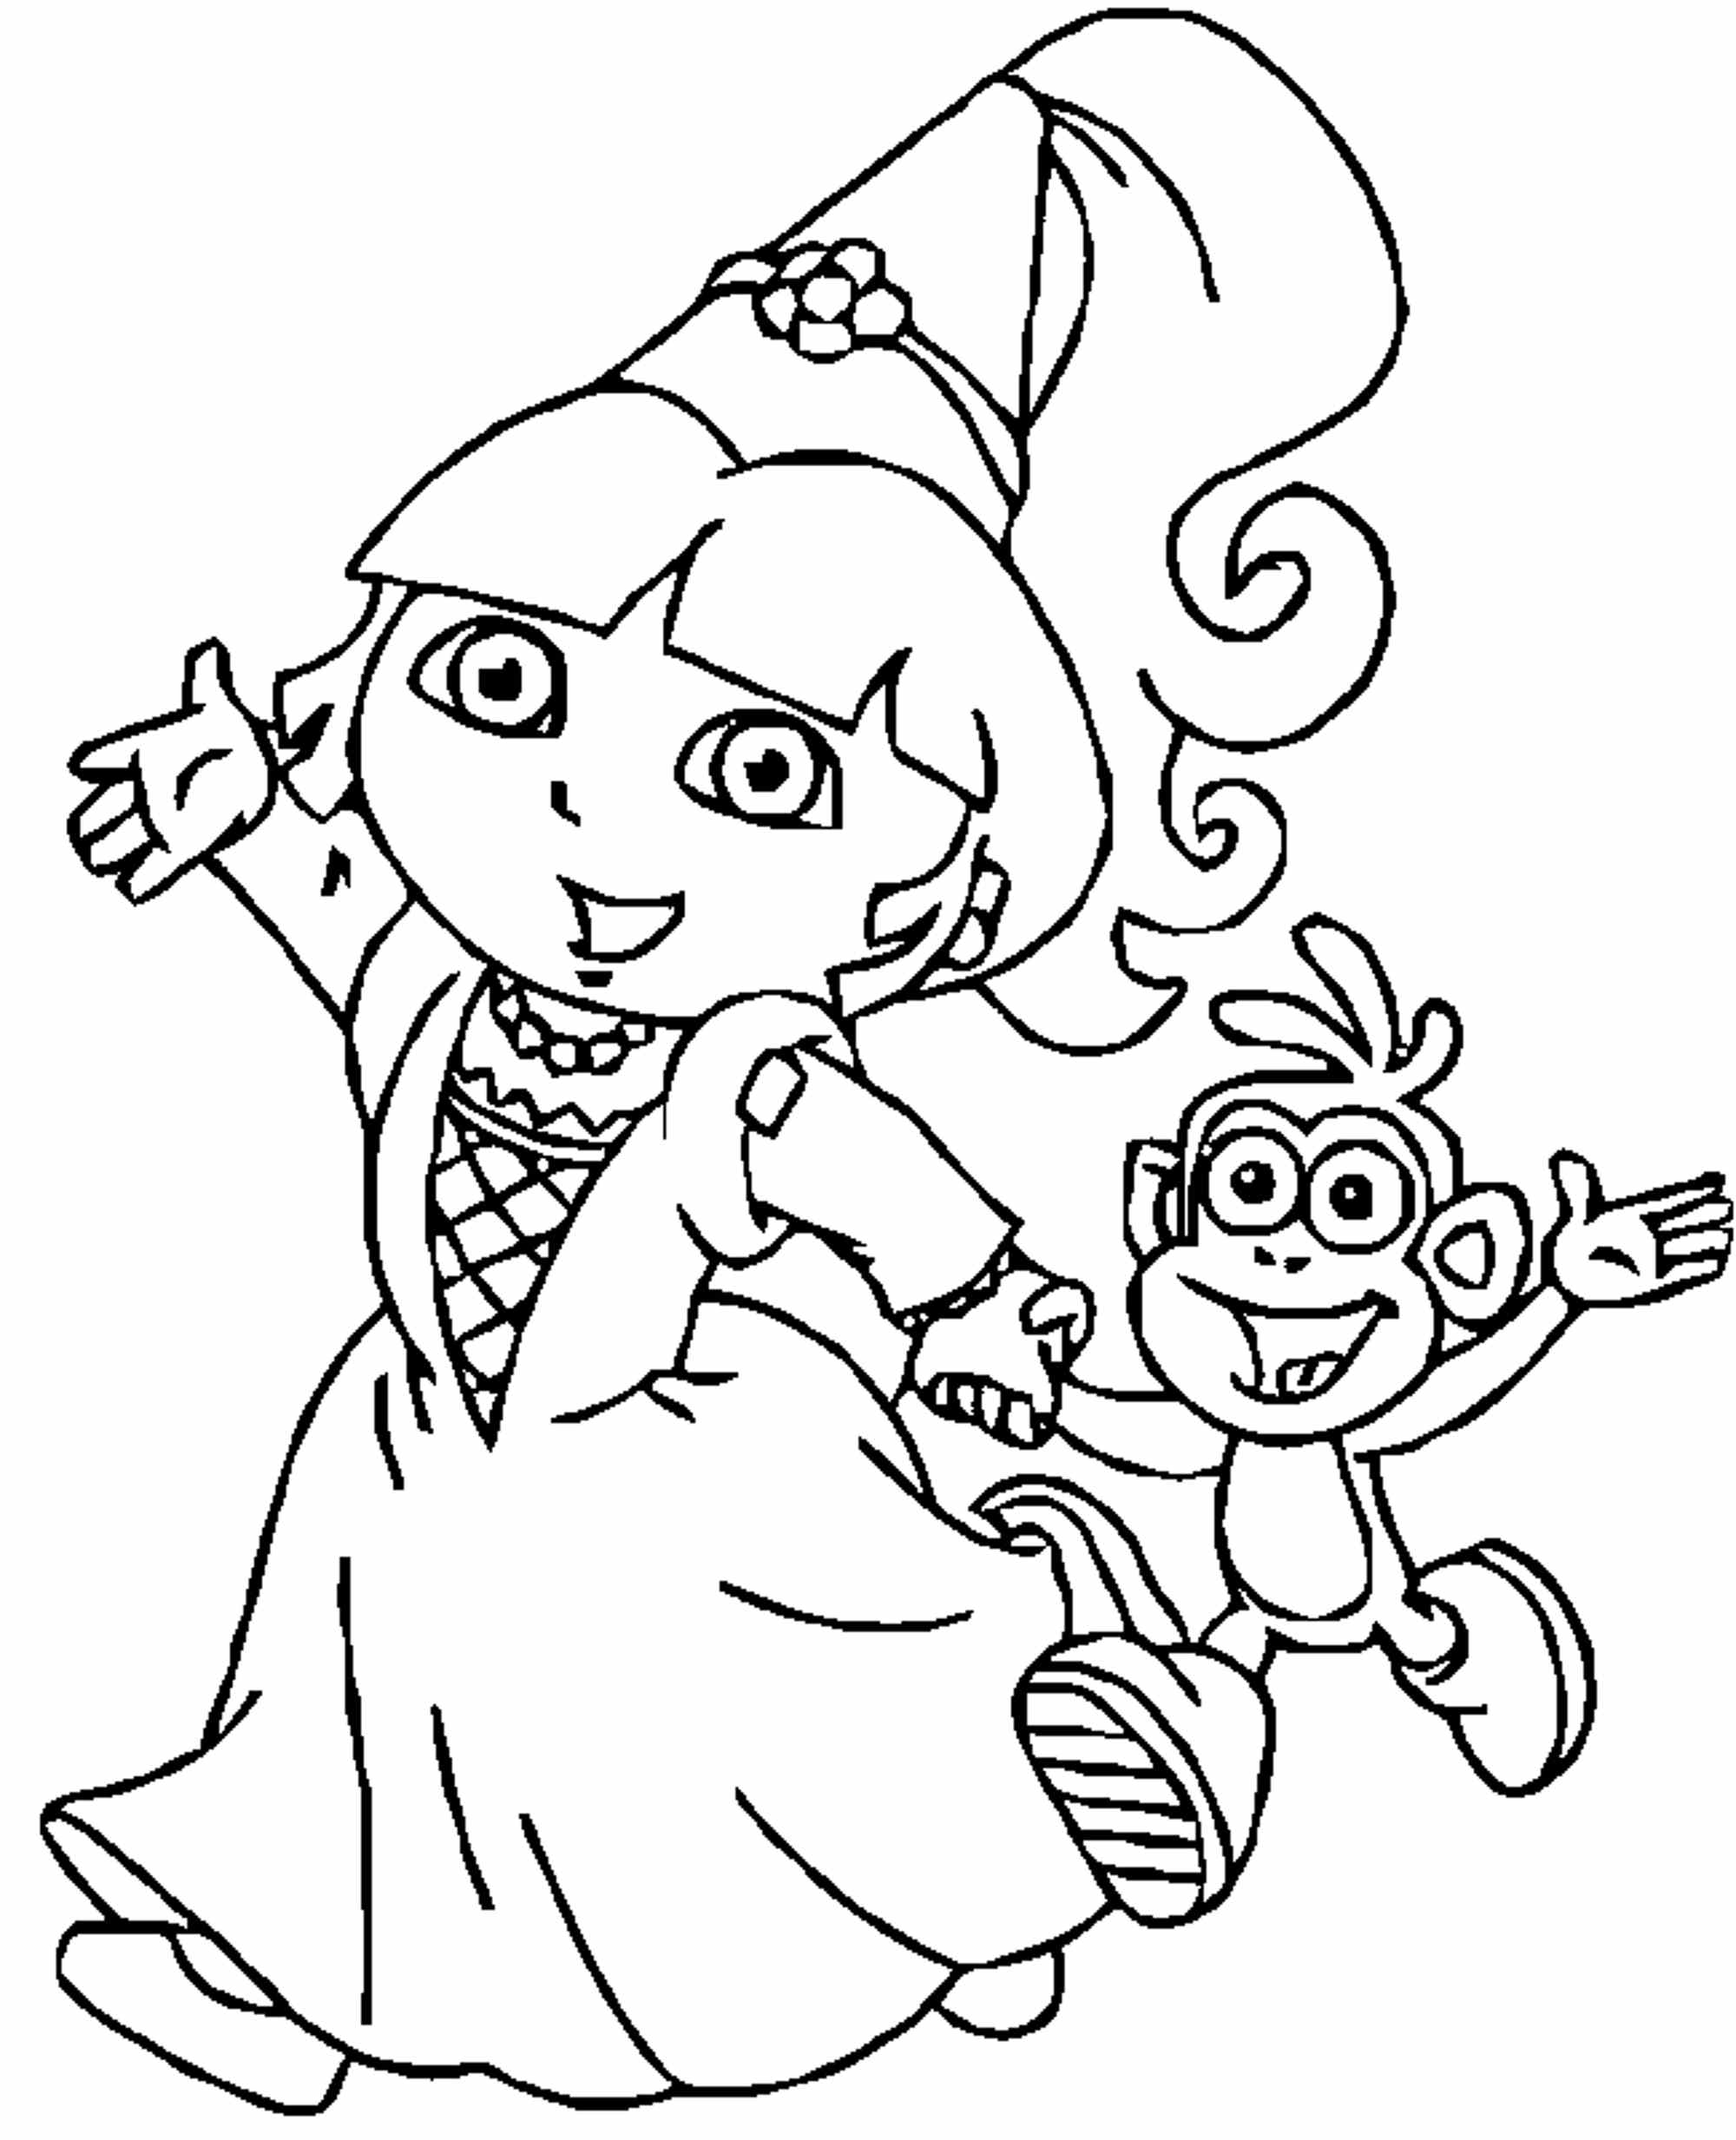 Pictures of dora to color